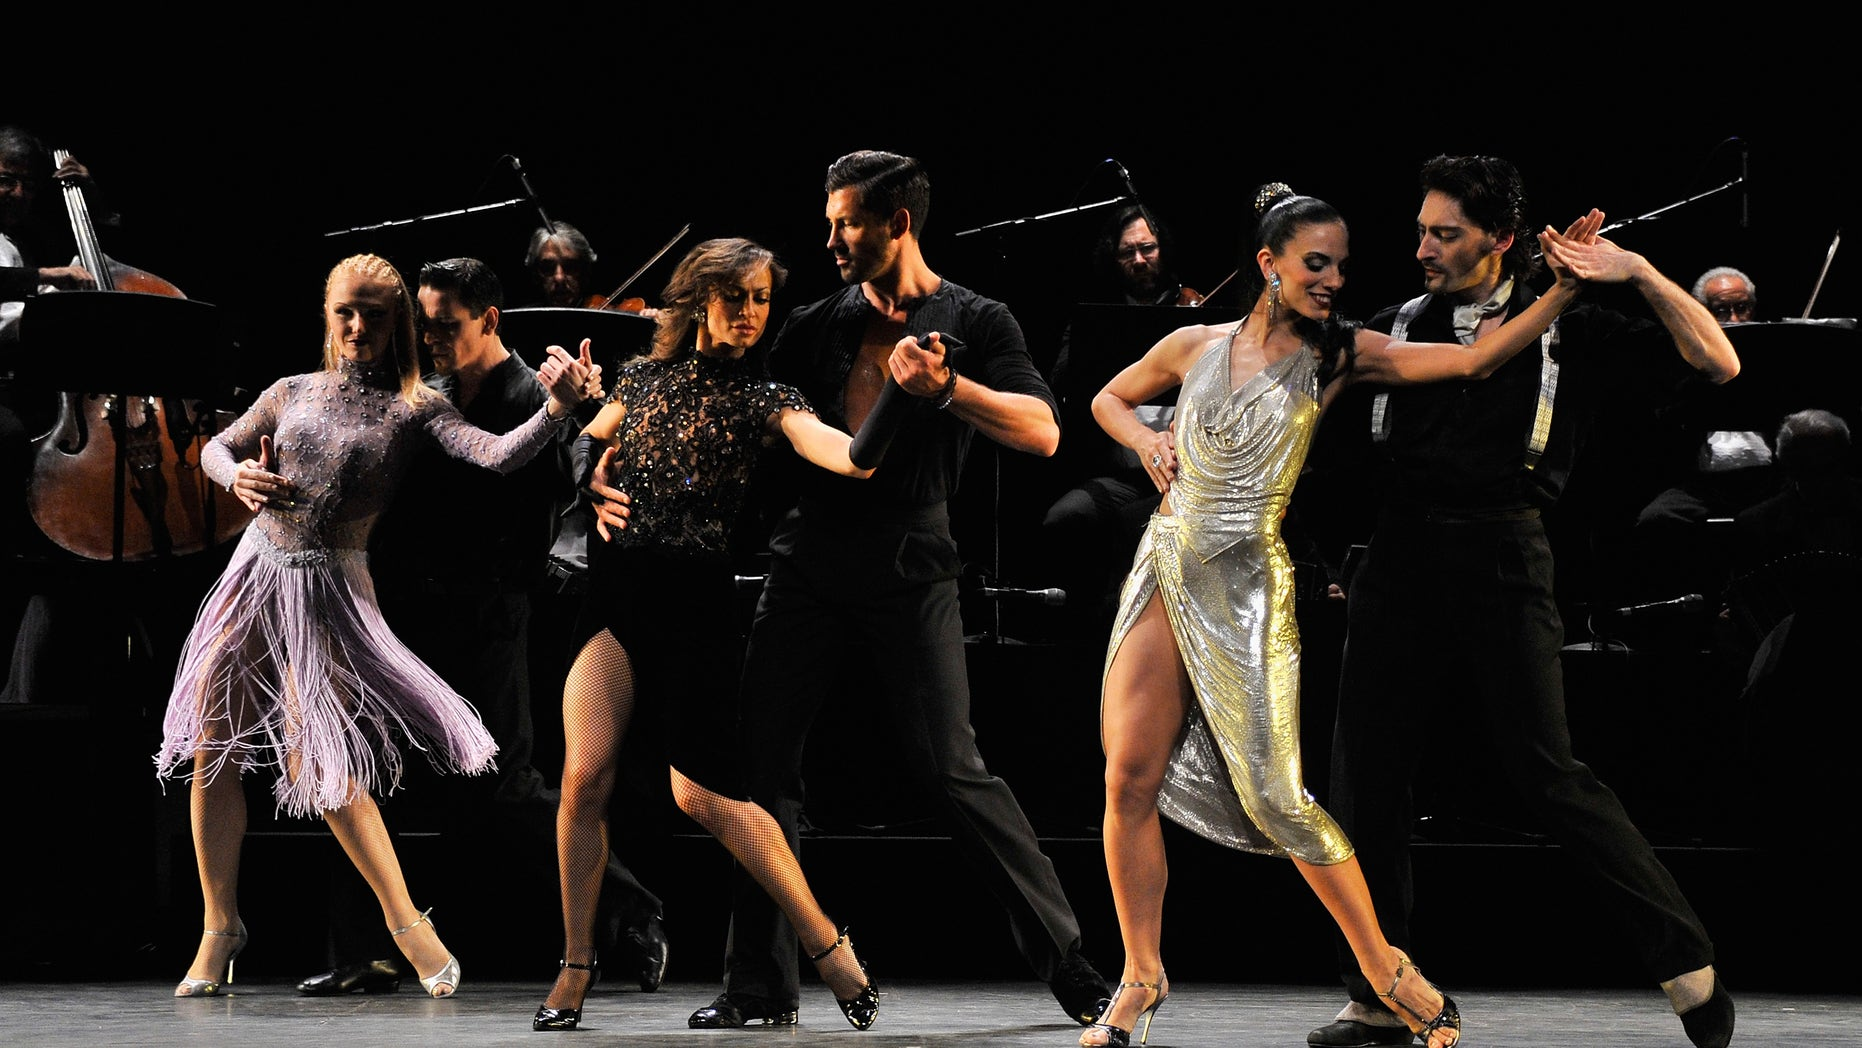 """NEW YORK, NY - JULY 11:  (L-R)  Dancers Soledad Buss, Cesar Peral, Karina Smirnoff, Maksim Chmerkovskiy, Victoria Galoto, and Juan Paulo Horvath perform at the """"Forever Tango"""" Press Preview at Walter Kerr Theatre on July 11, 2013 in New York City.  (Photo by Stephen Lovekin/Getty Images)"""